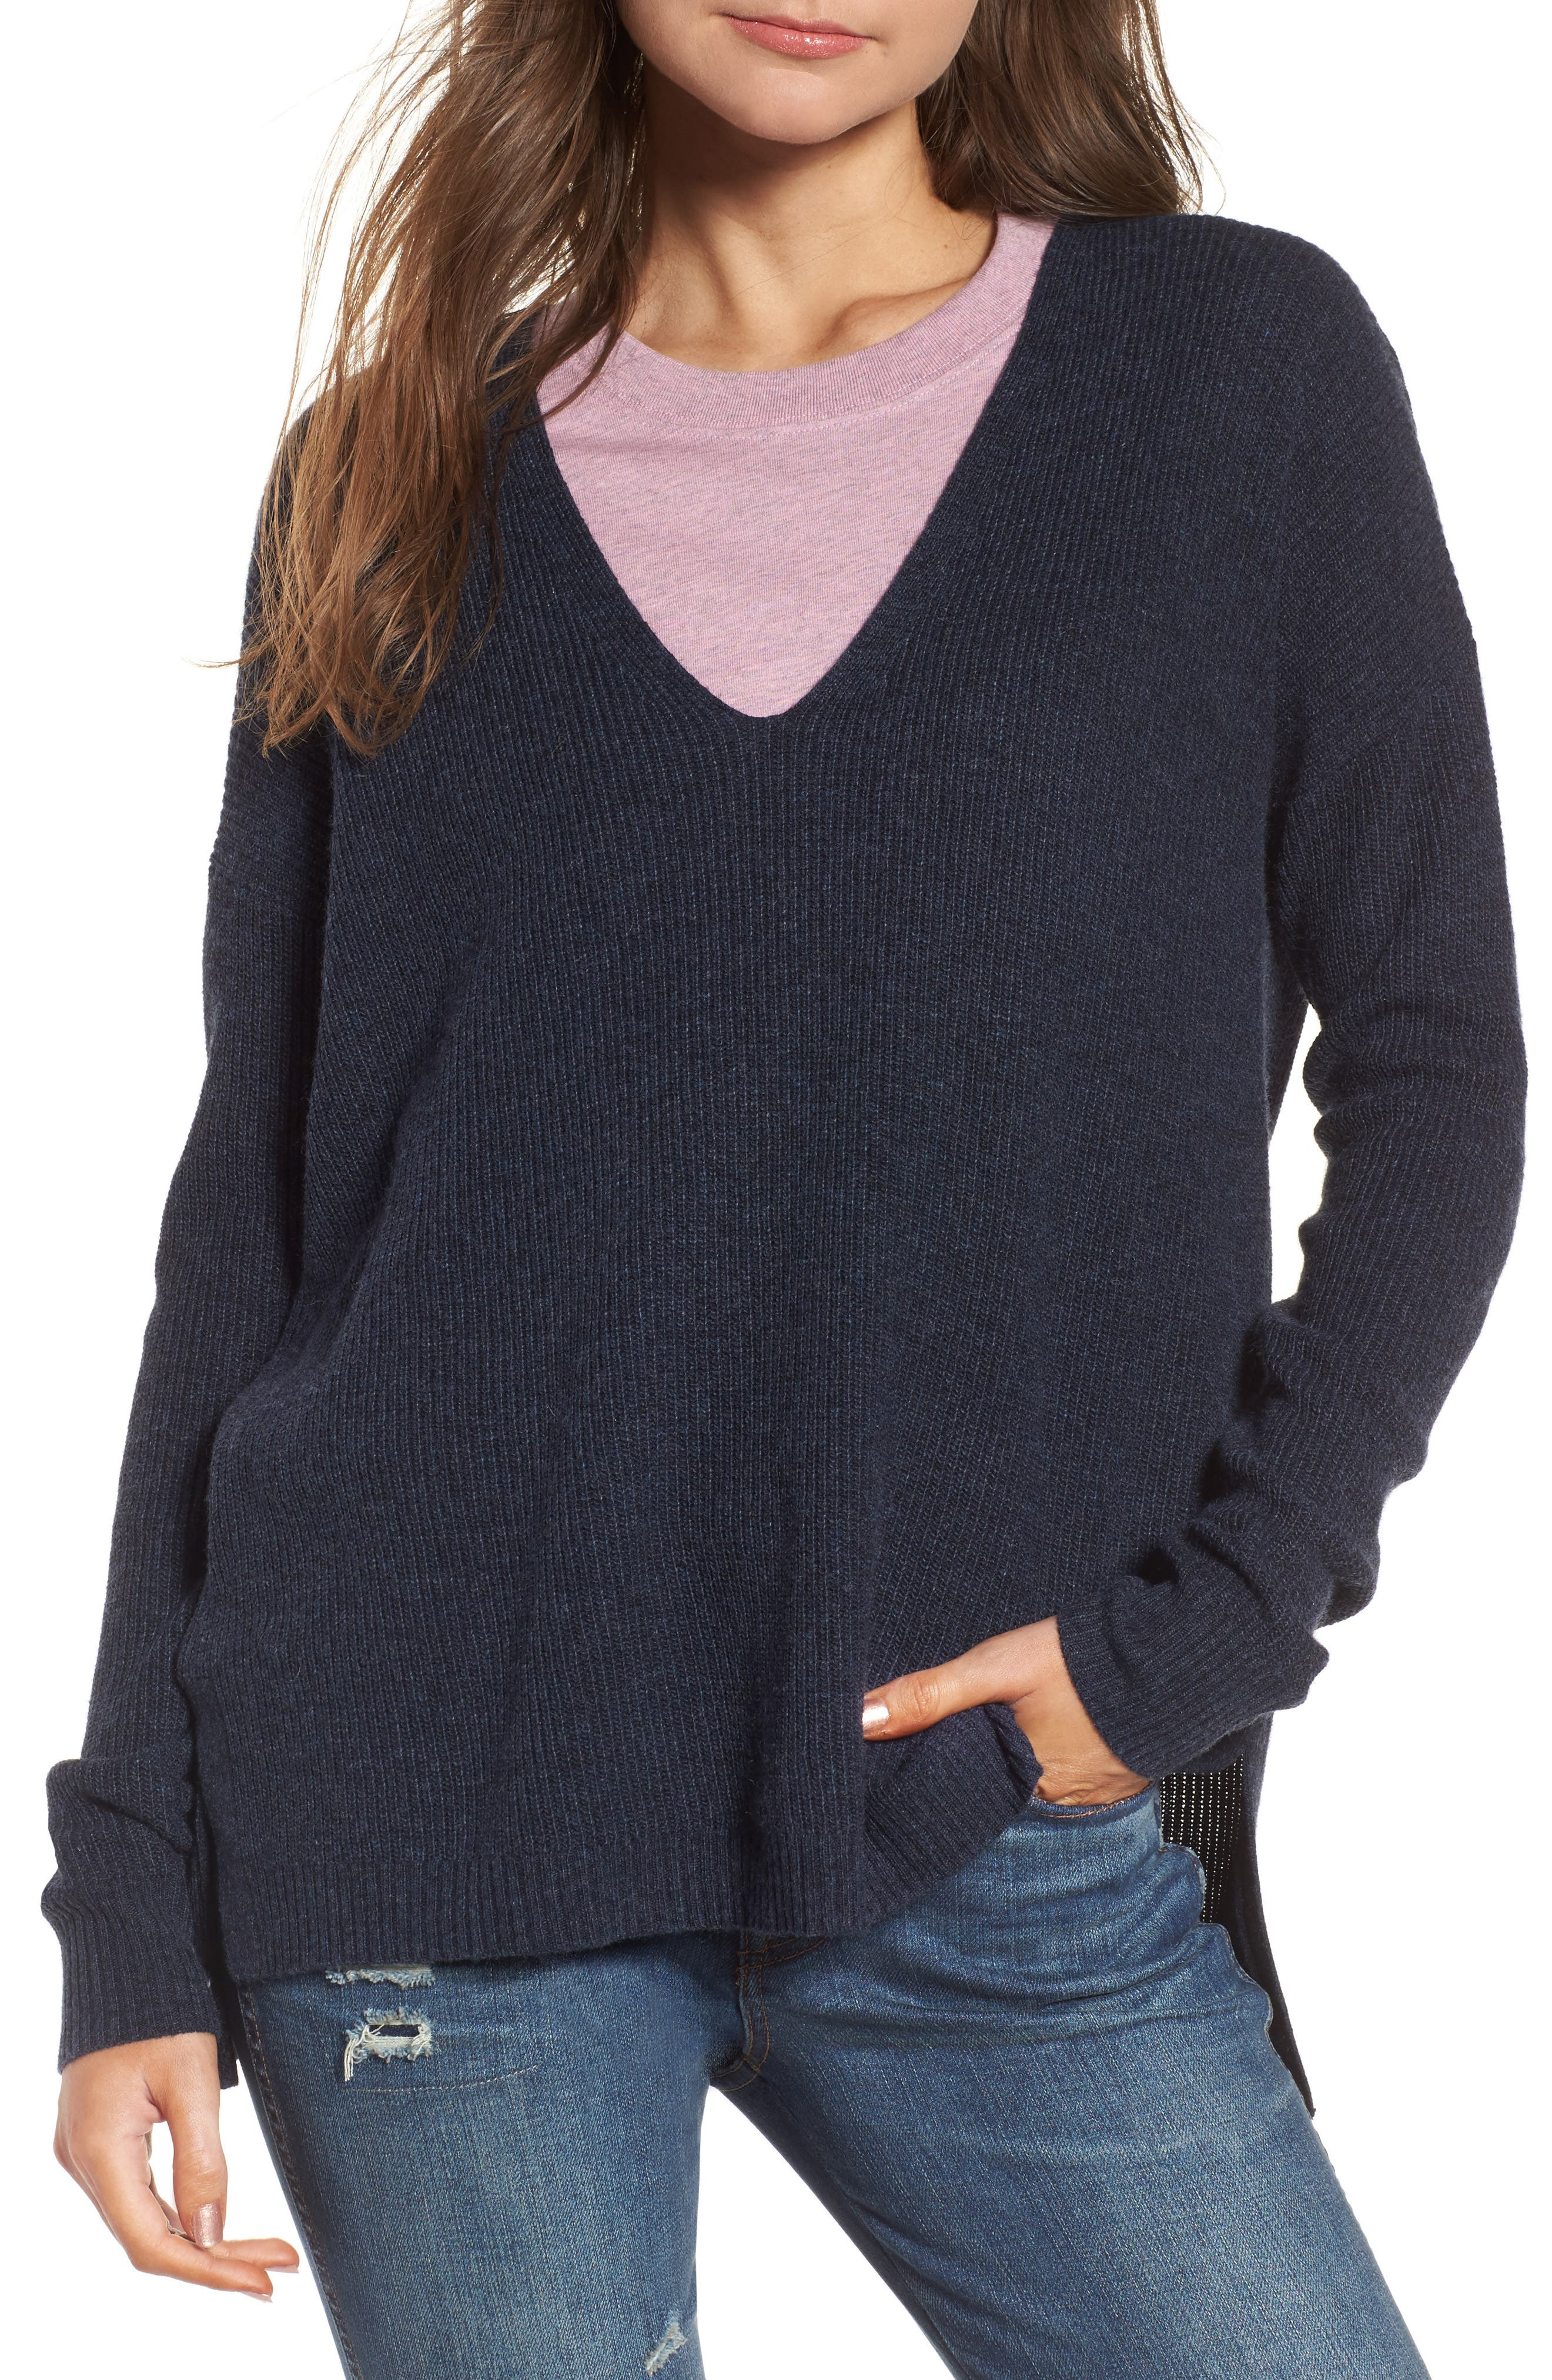 Warmlight V-Neck Sweater,                         Main,                         color,